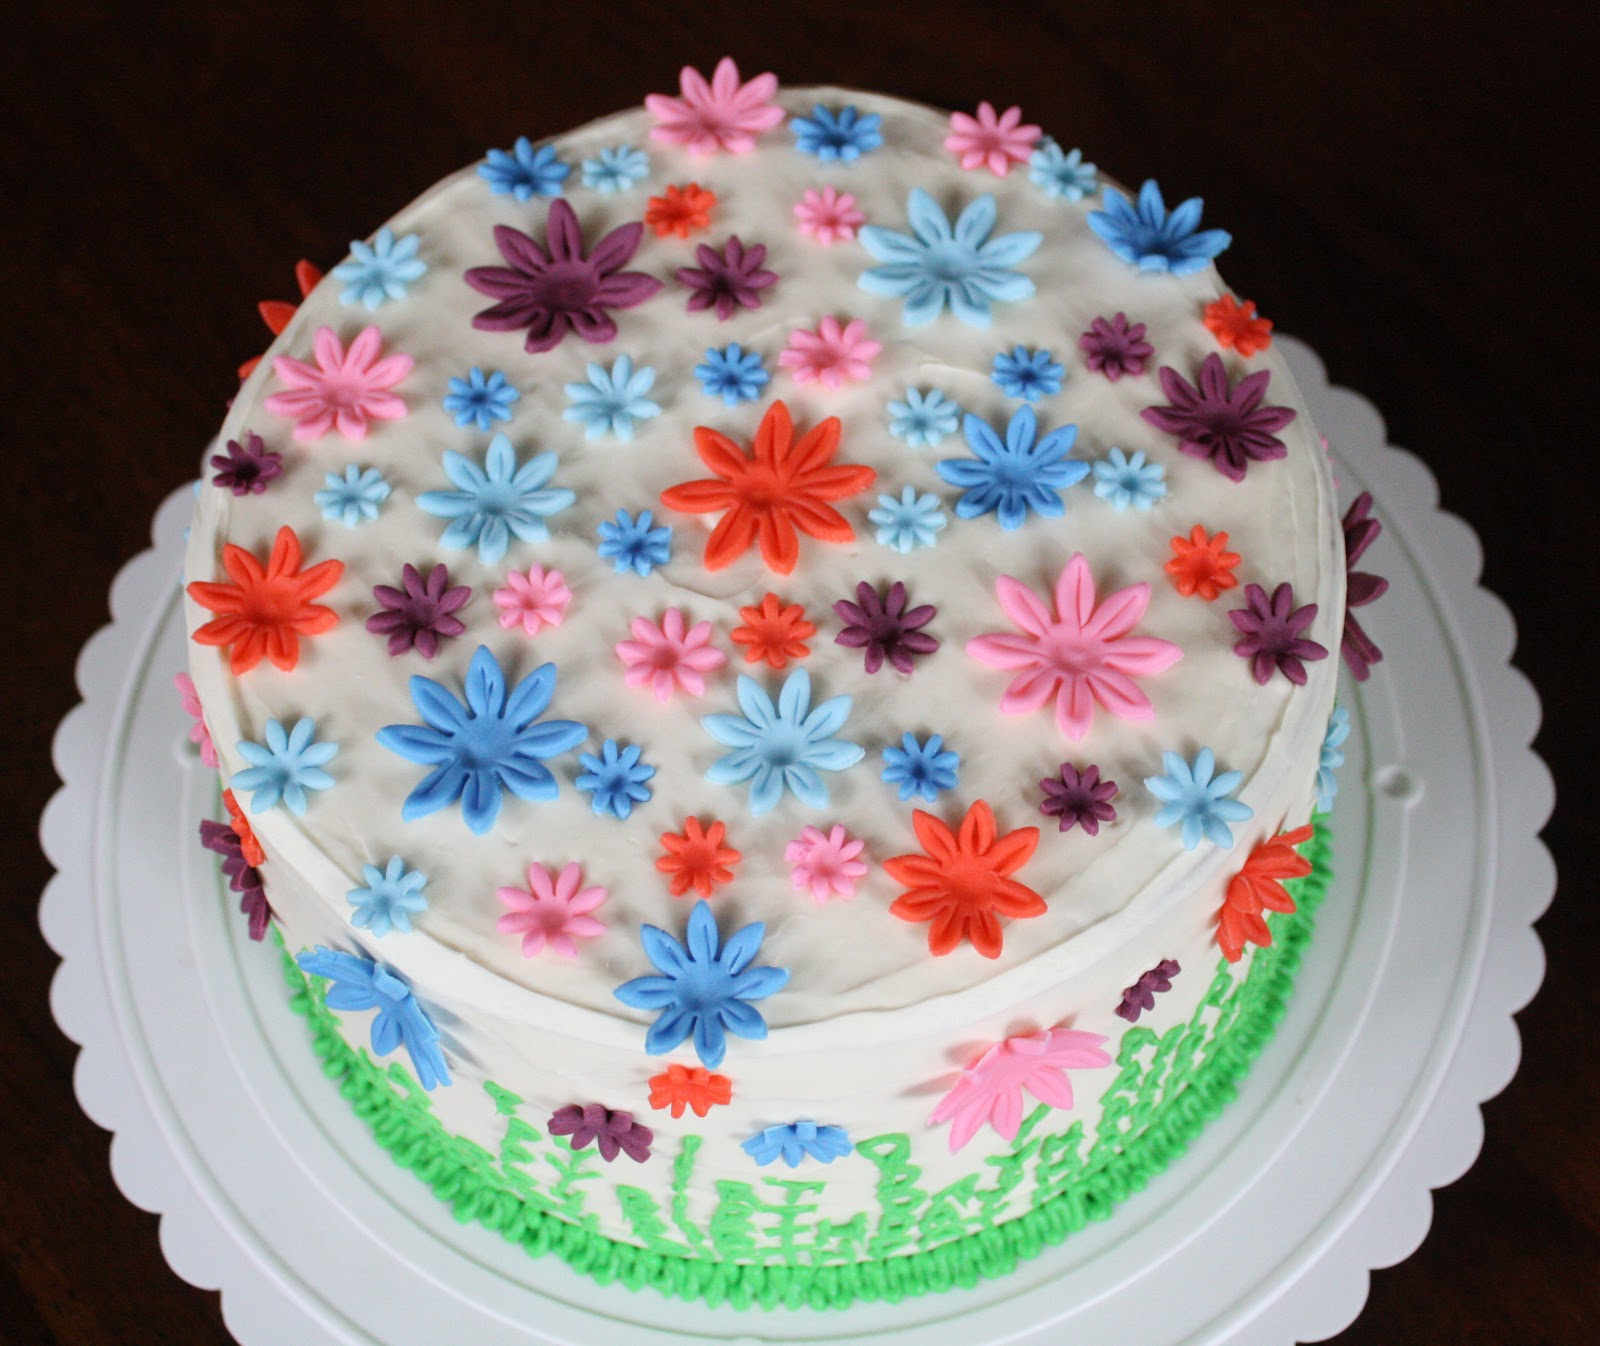 Birthday Cake Idea For Mom Image Inspiration of Cake and